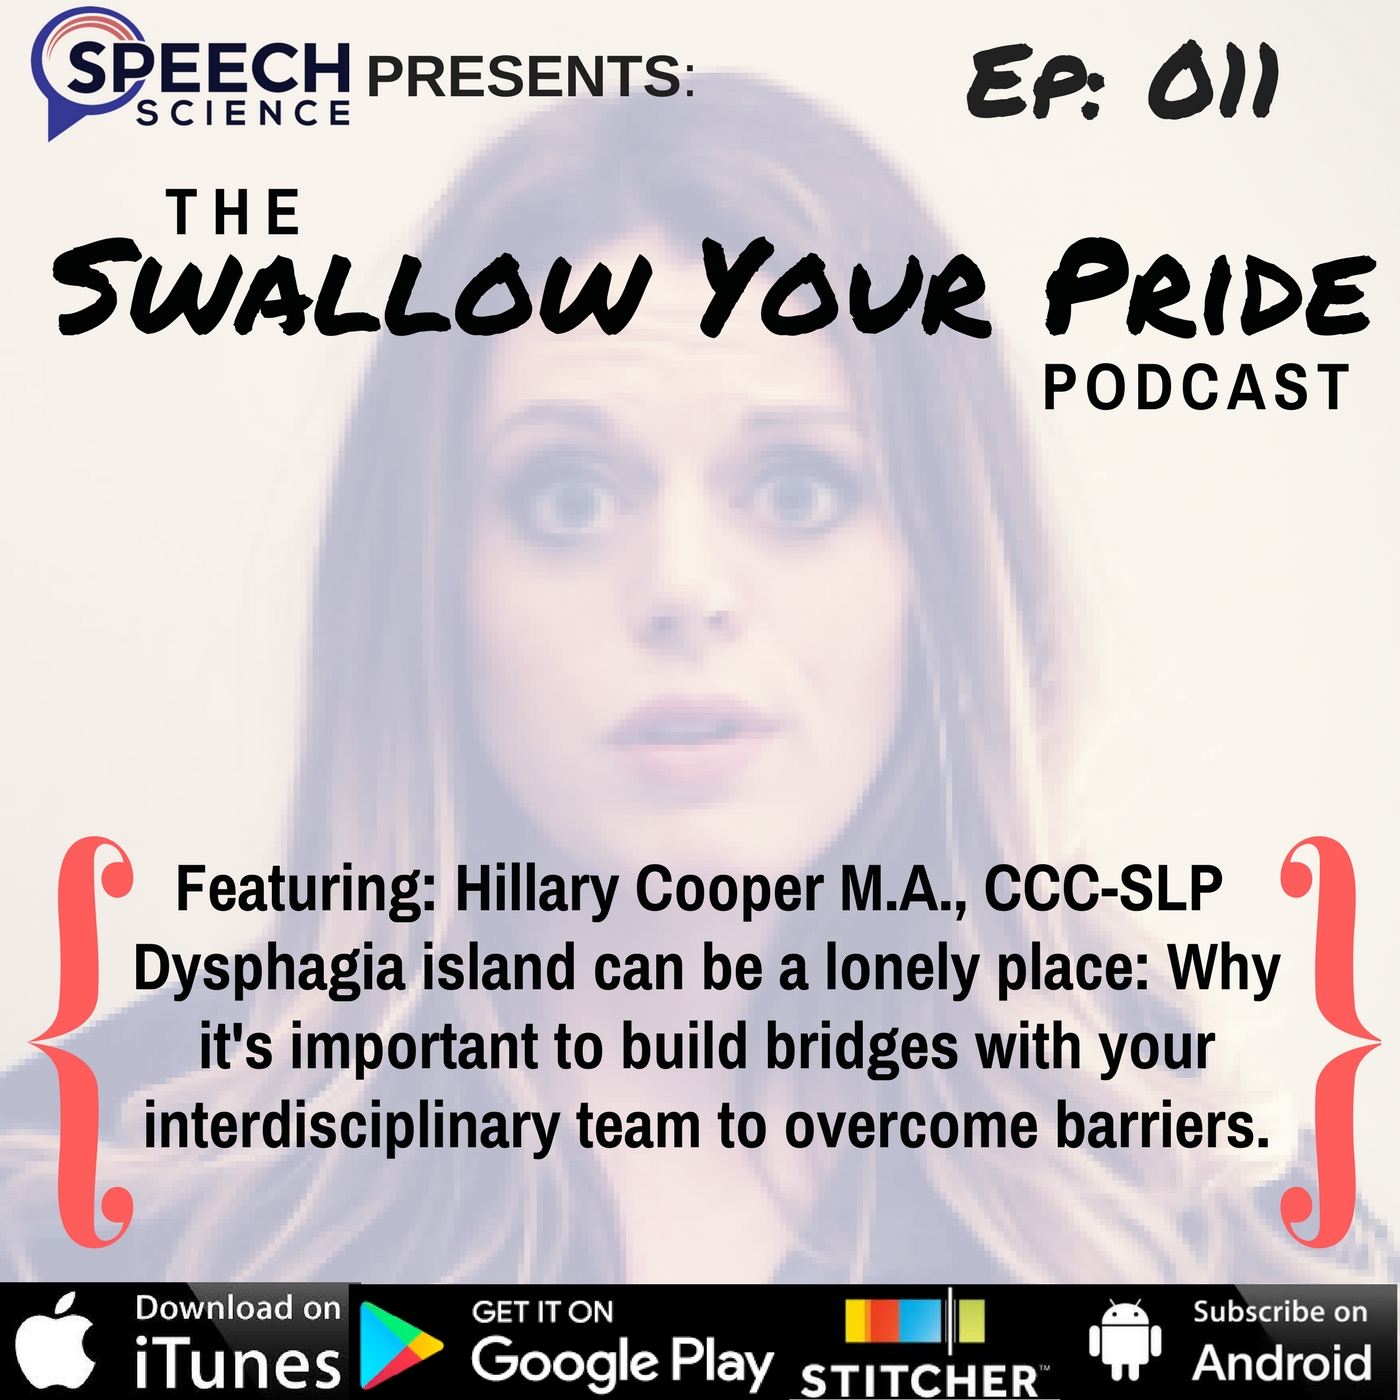 011 – Hillary Cooper, MA – CCC-SLP – Dysphagia Island Can Be a Lonely Place – Why It's So Important to Build Bridges With Your Interdisciplinary Team to Overcome Barriers